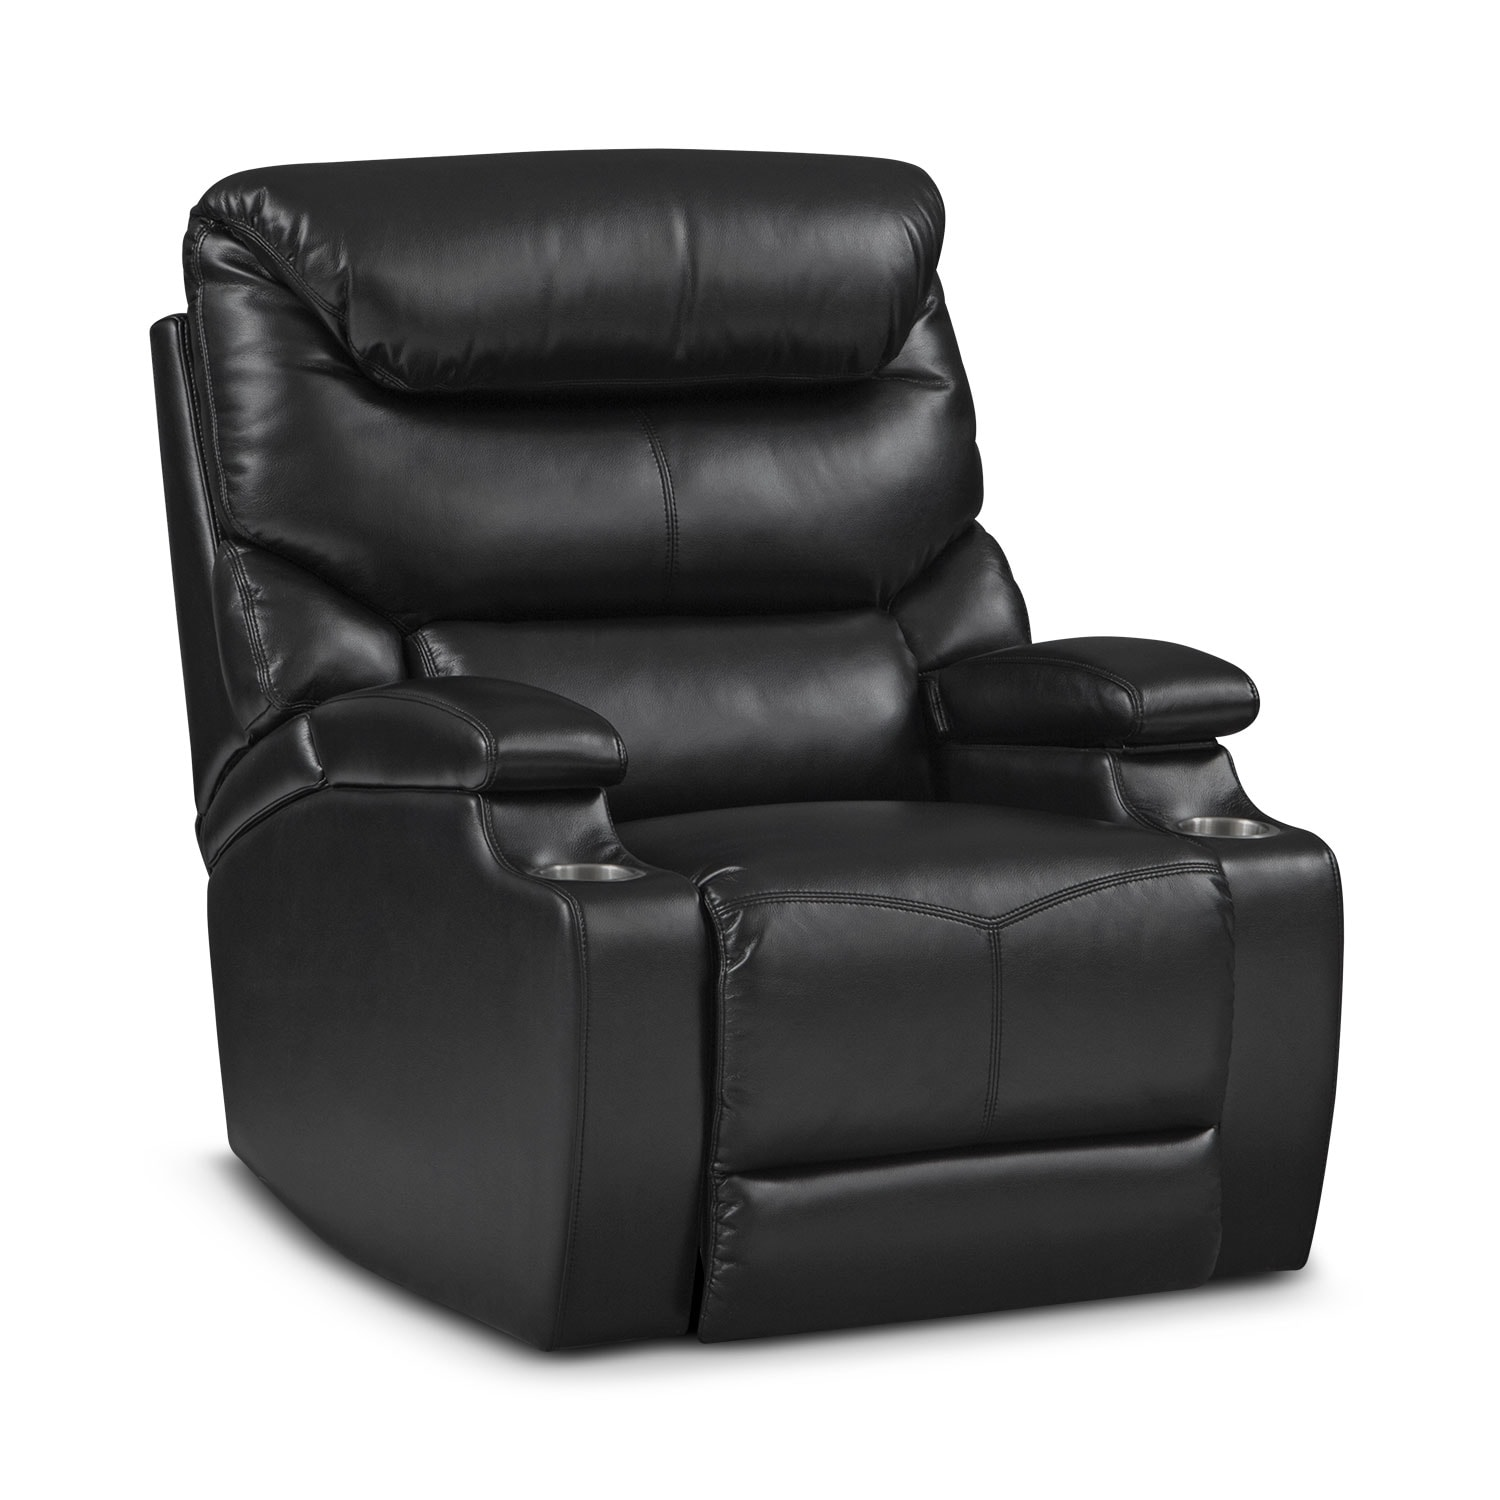 Small Recliners For Bedroom Recliners And Glider Chairs Value City Value City Furniture